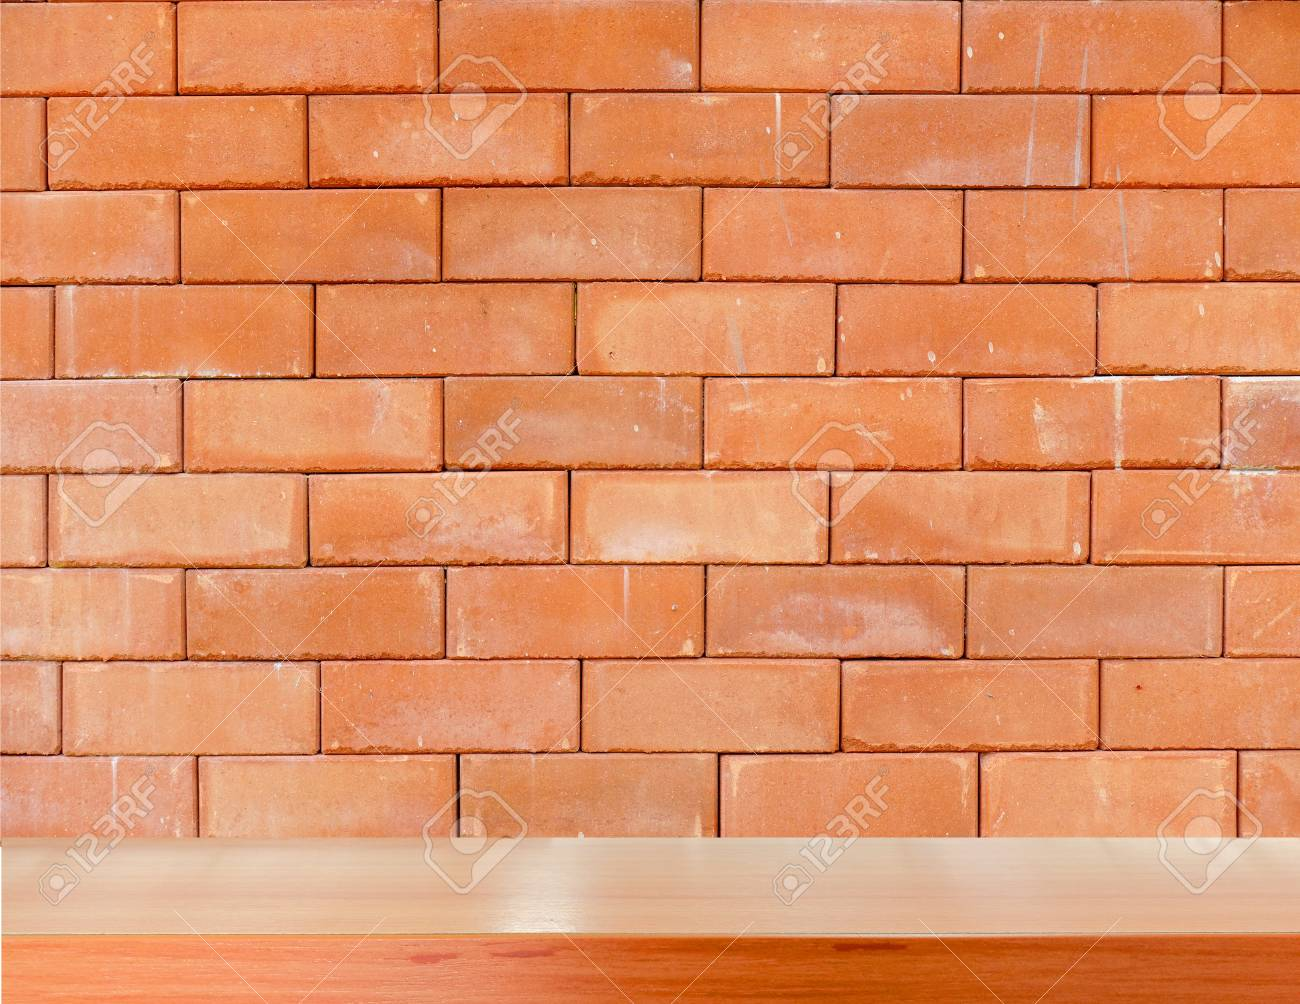 Wooden Shelves On Red Brick Background